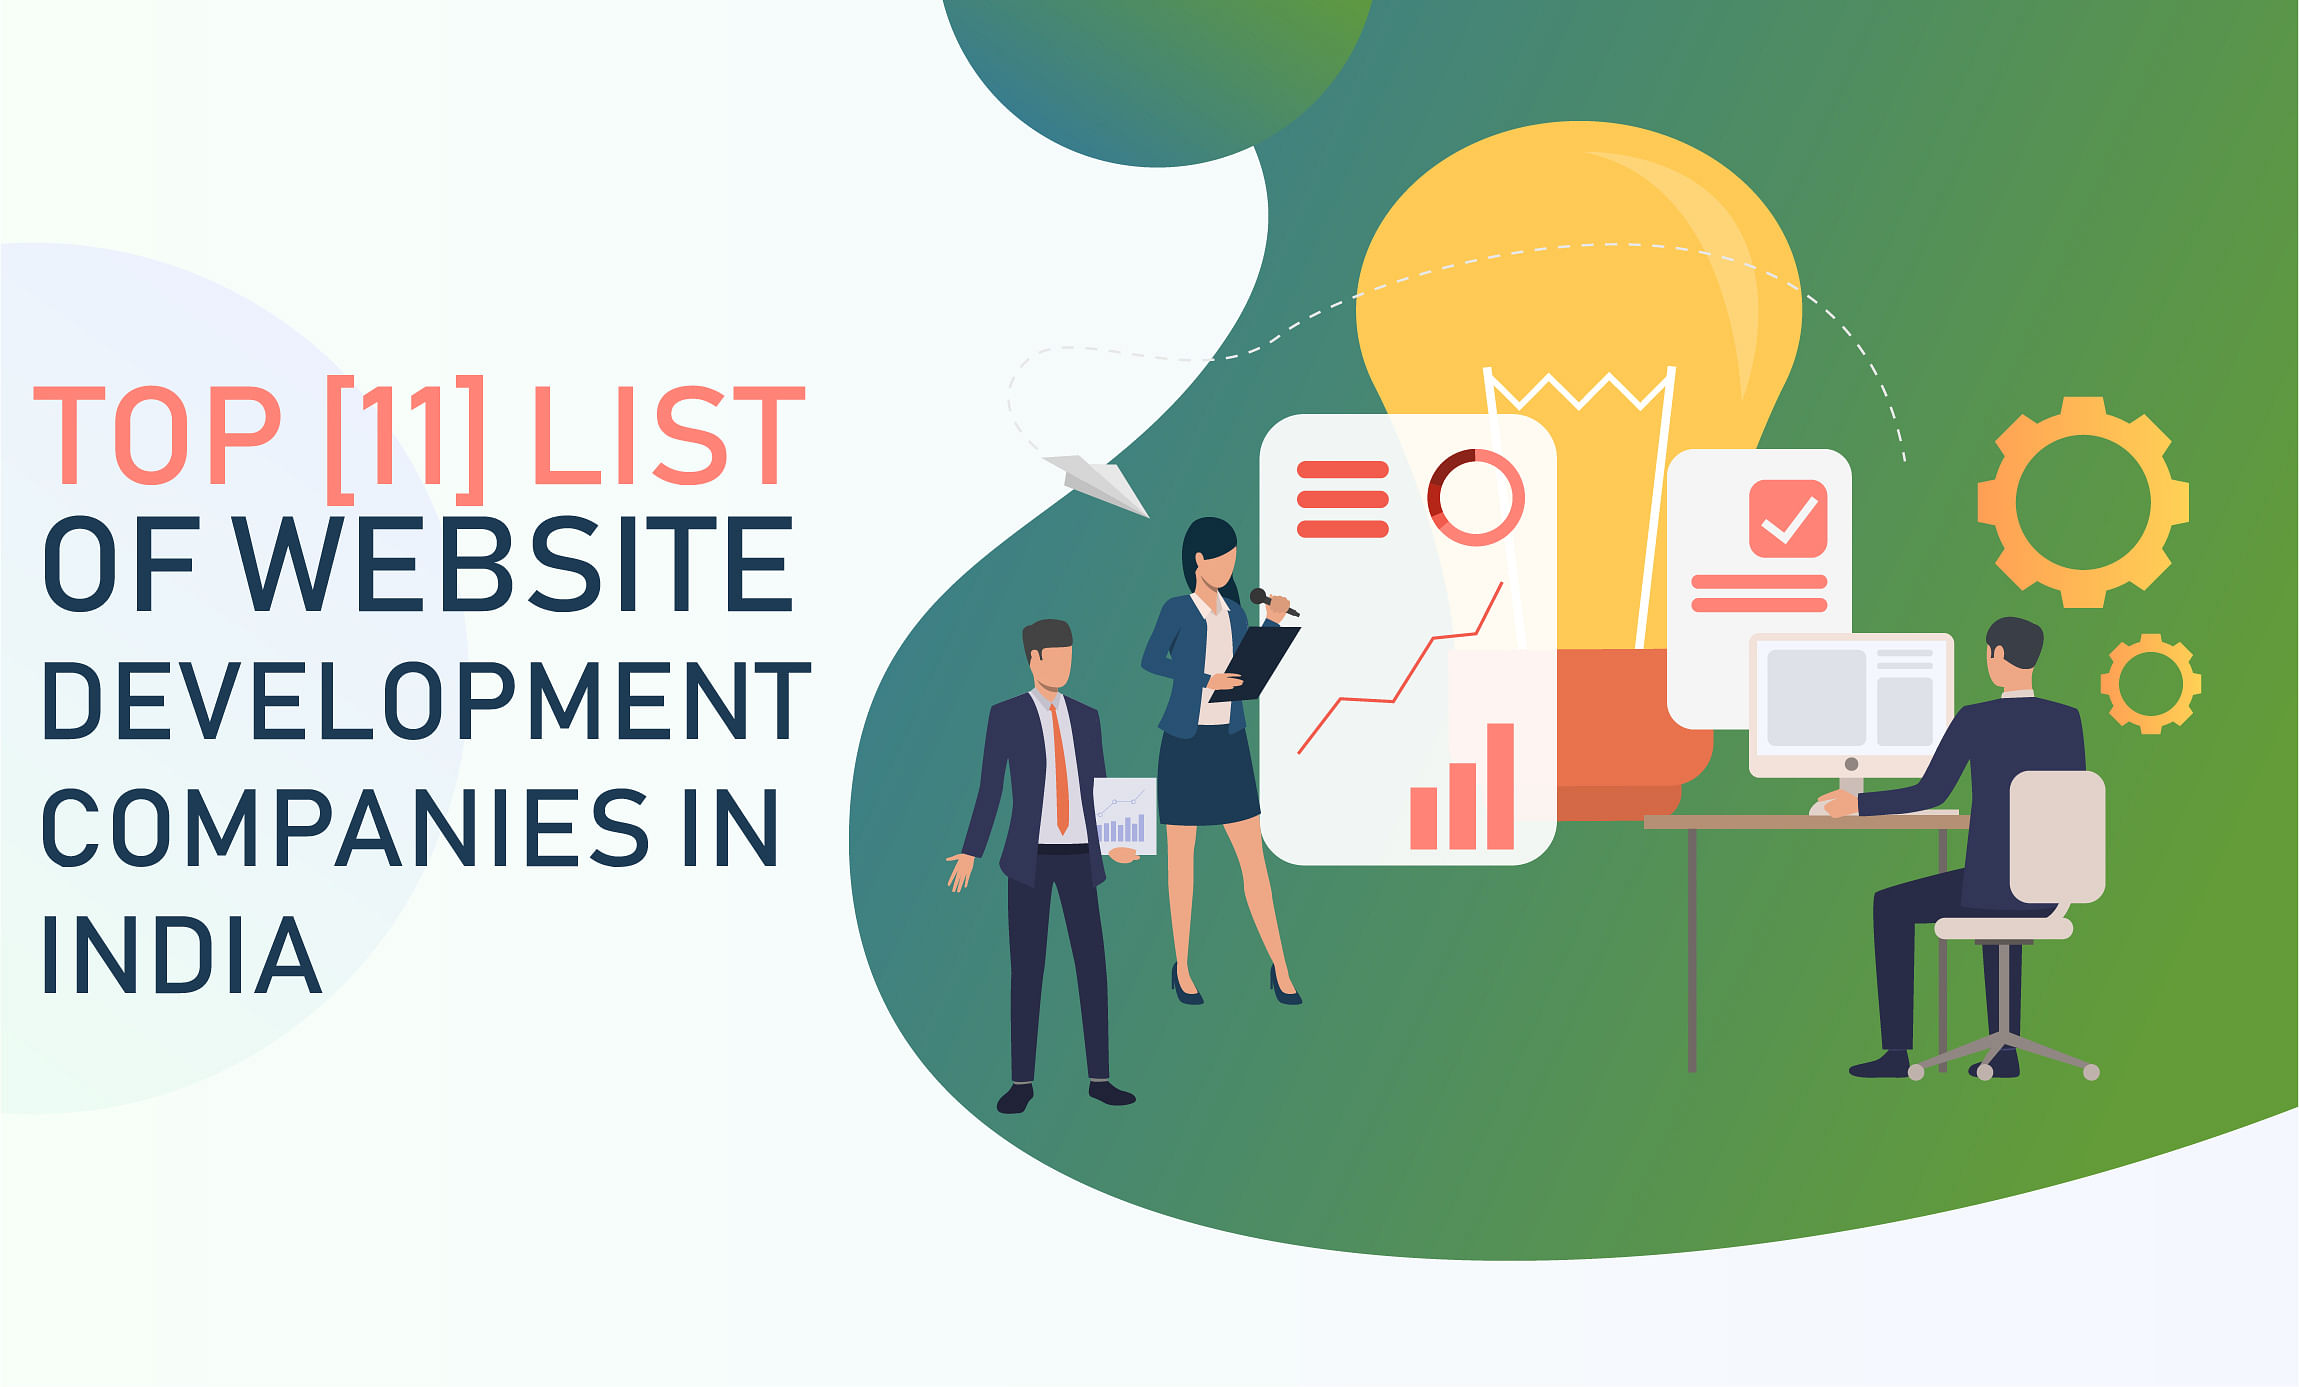 Top 11 List of Website Development Companies In India |YourStory